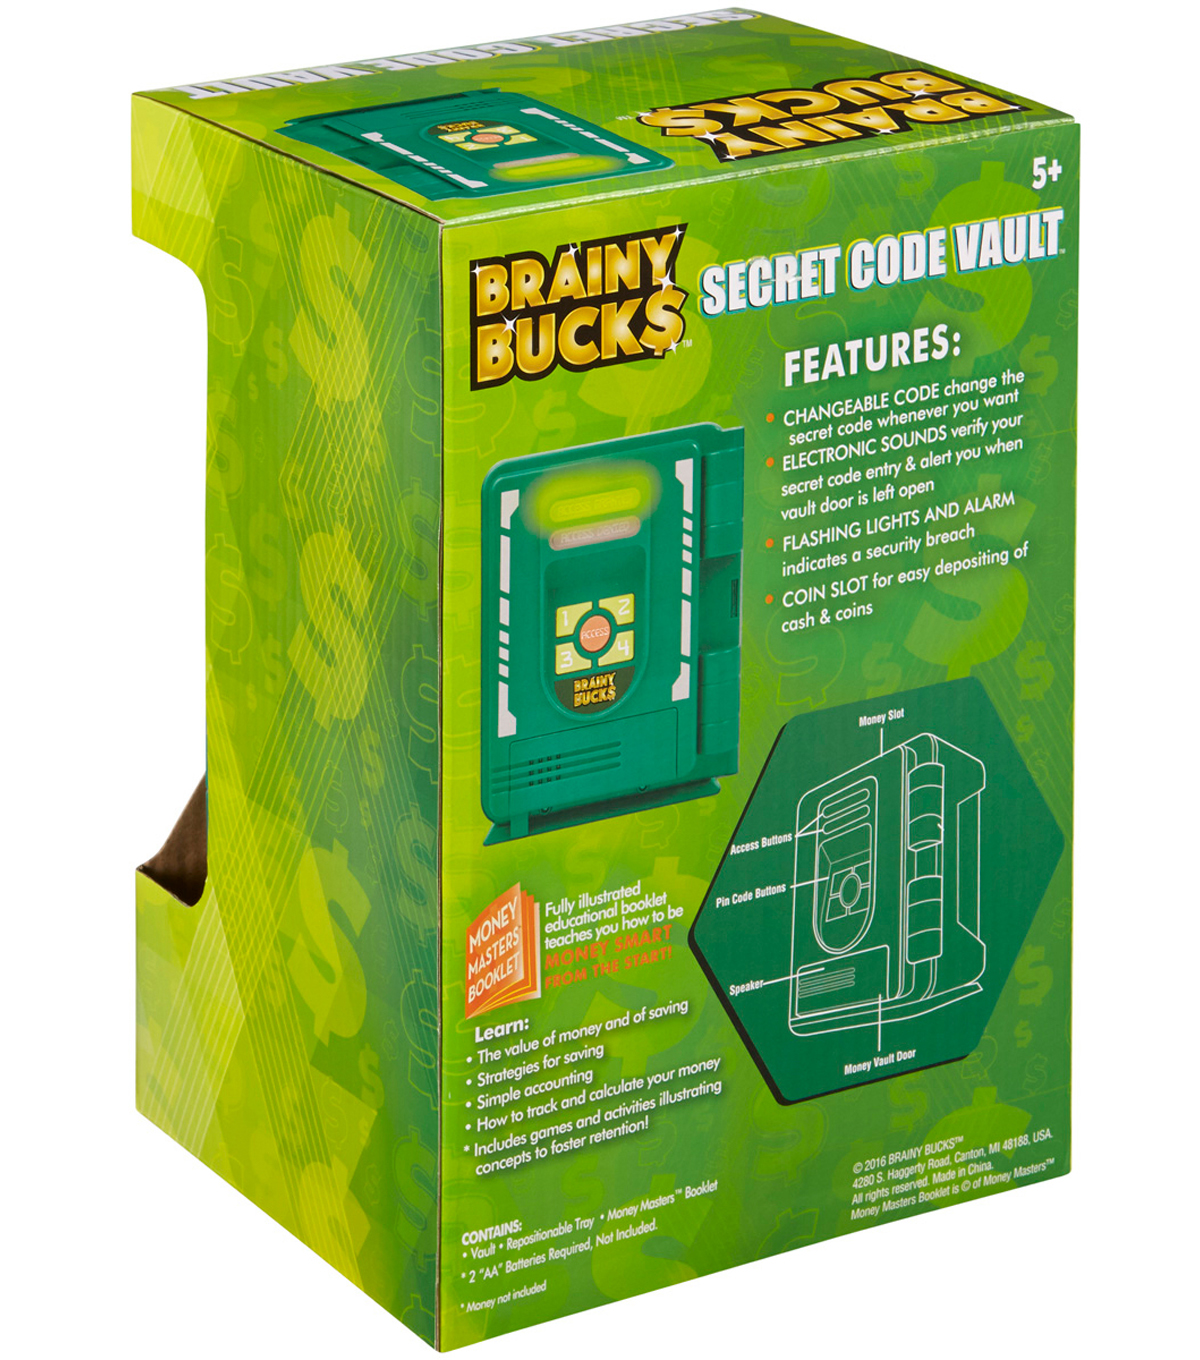 Brainy Bucks Secret PIN Vault